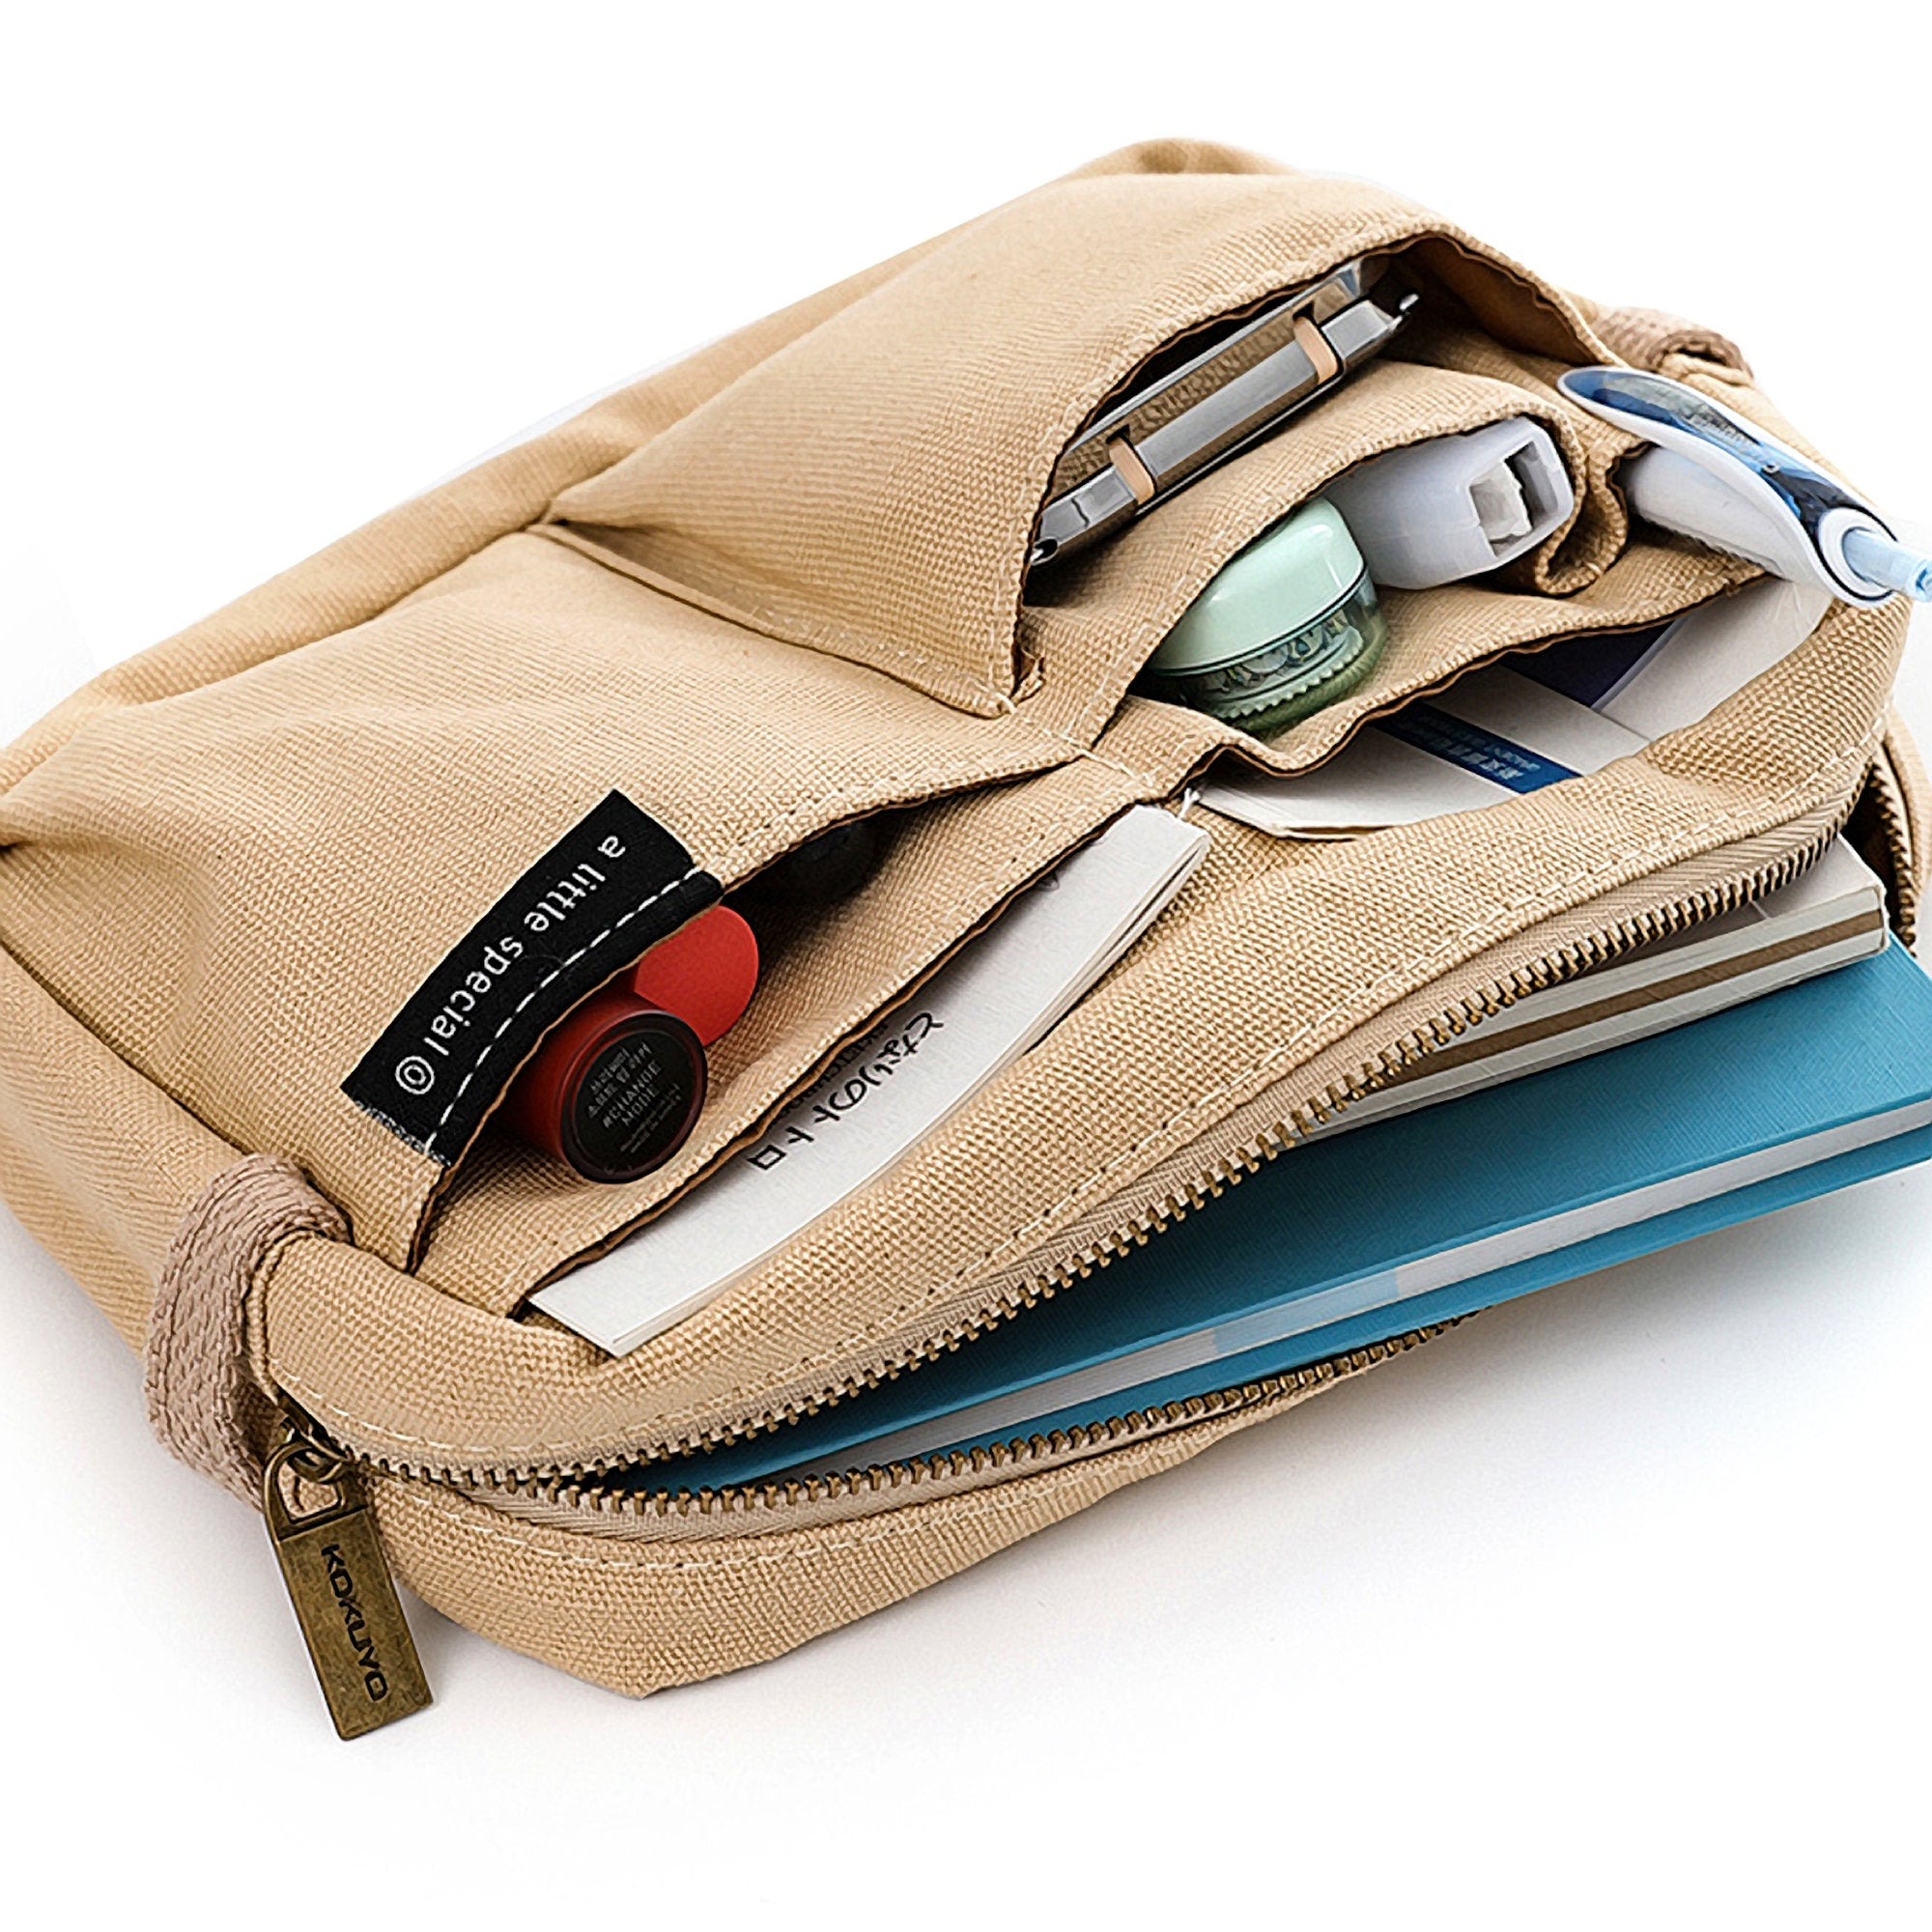 BEIGE Japan KOKUYO NEW One Series Large Capacity Folio Case Bag in Bag Pen Case Pencil Case - The Stationery Life!